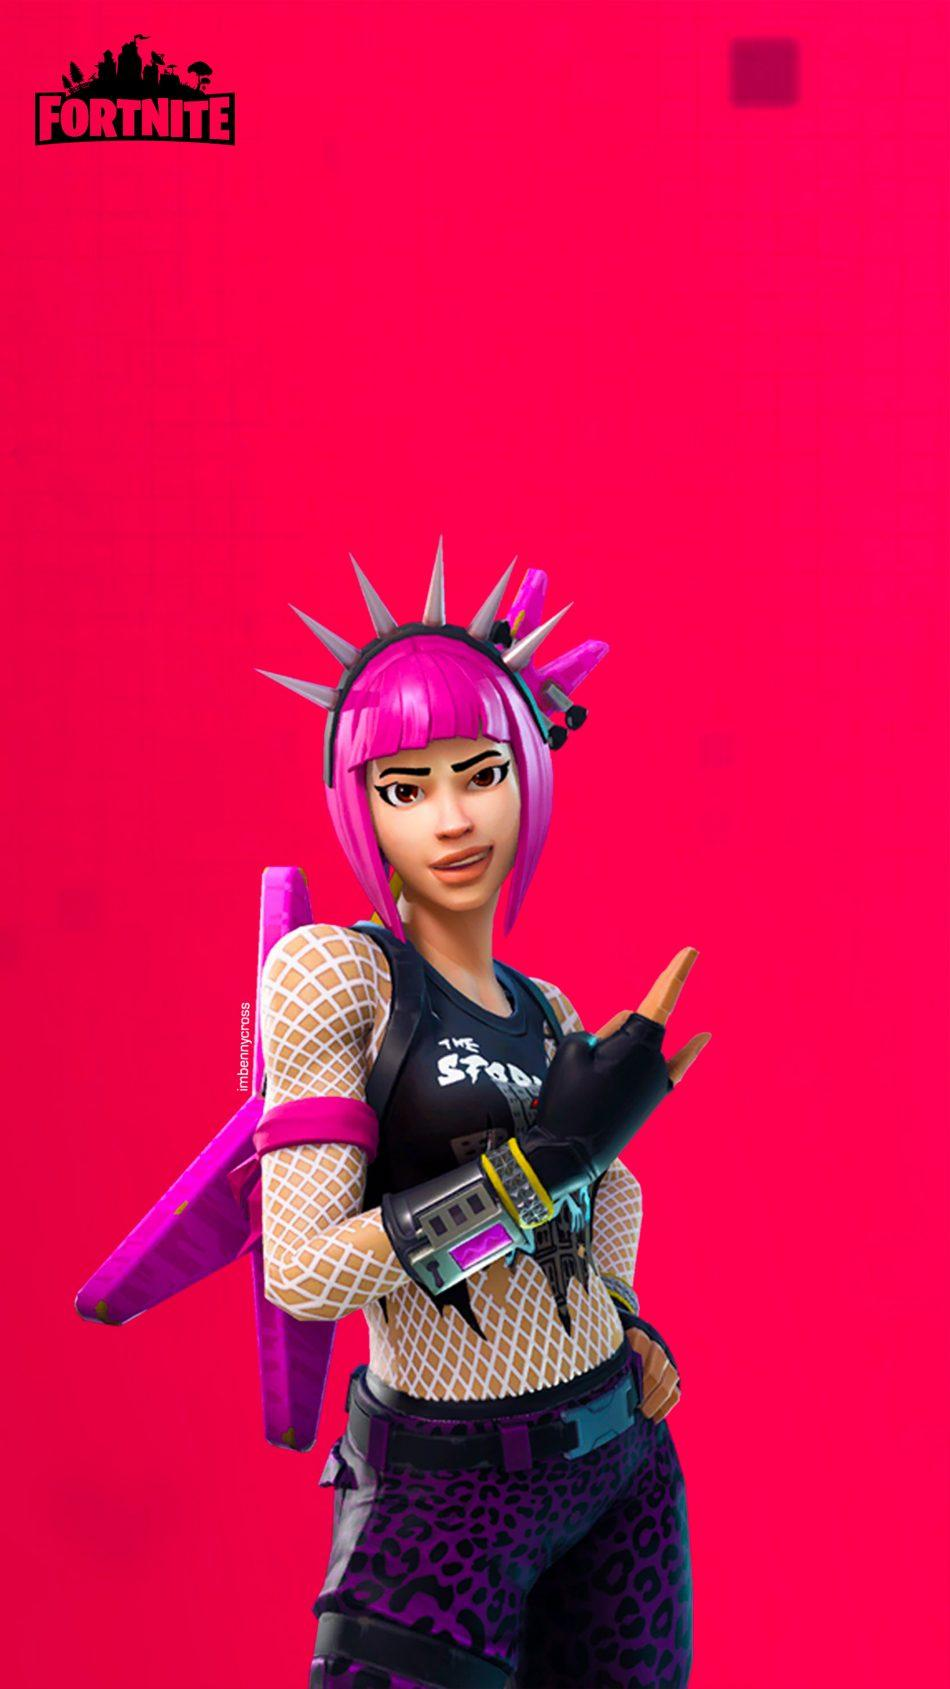 Download Fortnite Punk Girl Free Pure 4K Ultra HD Mobile Wallpaper